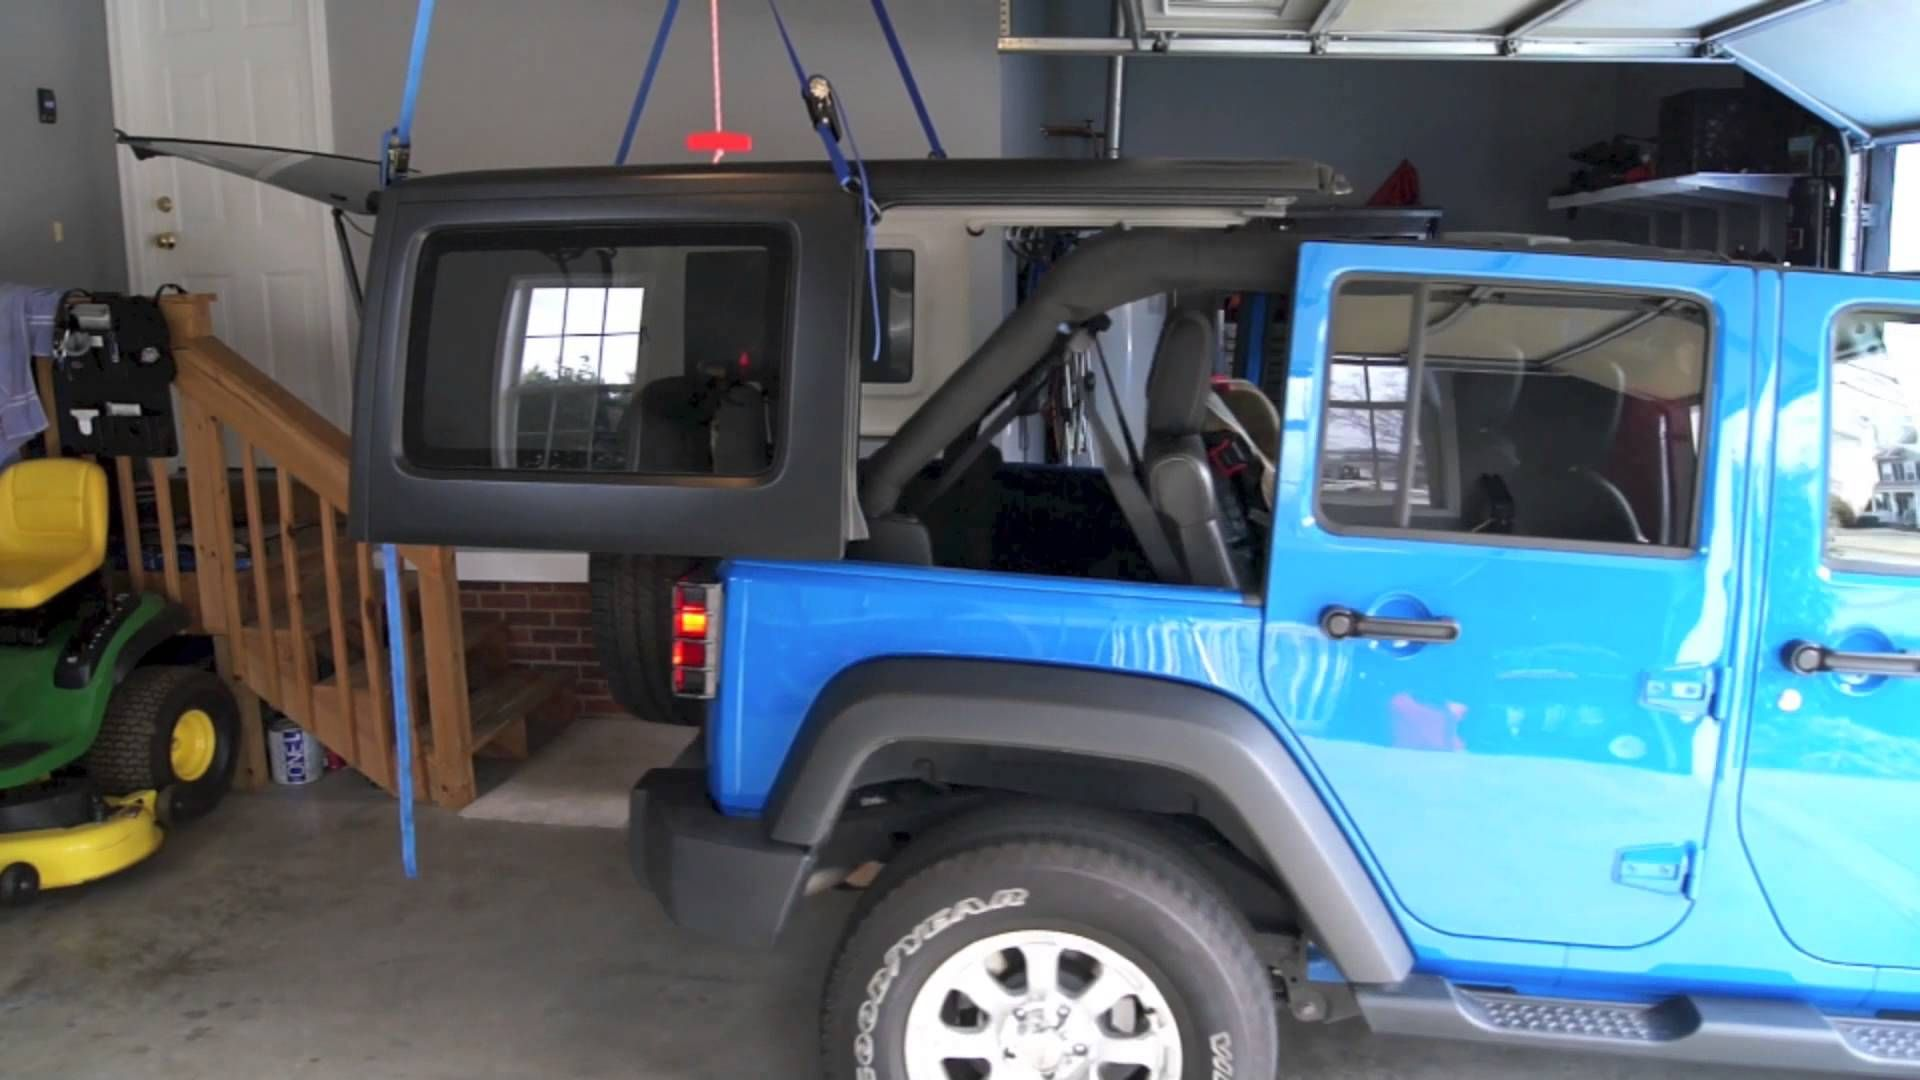 Diy Jeep Hoist Video Shows How To Use 4 Straps And Ratchet System To Hoist A Jeep Wrangler Hard Top Jeep Wrangler Diy Jeep Jeep Wrangler Accessories